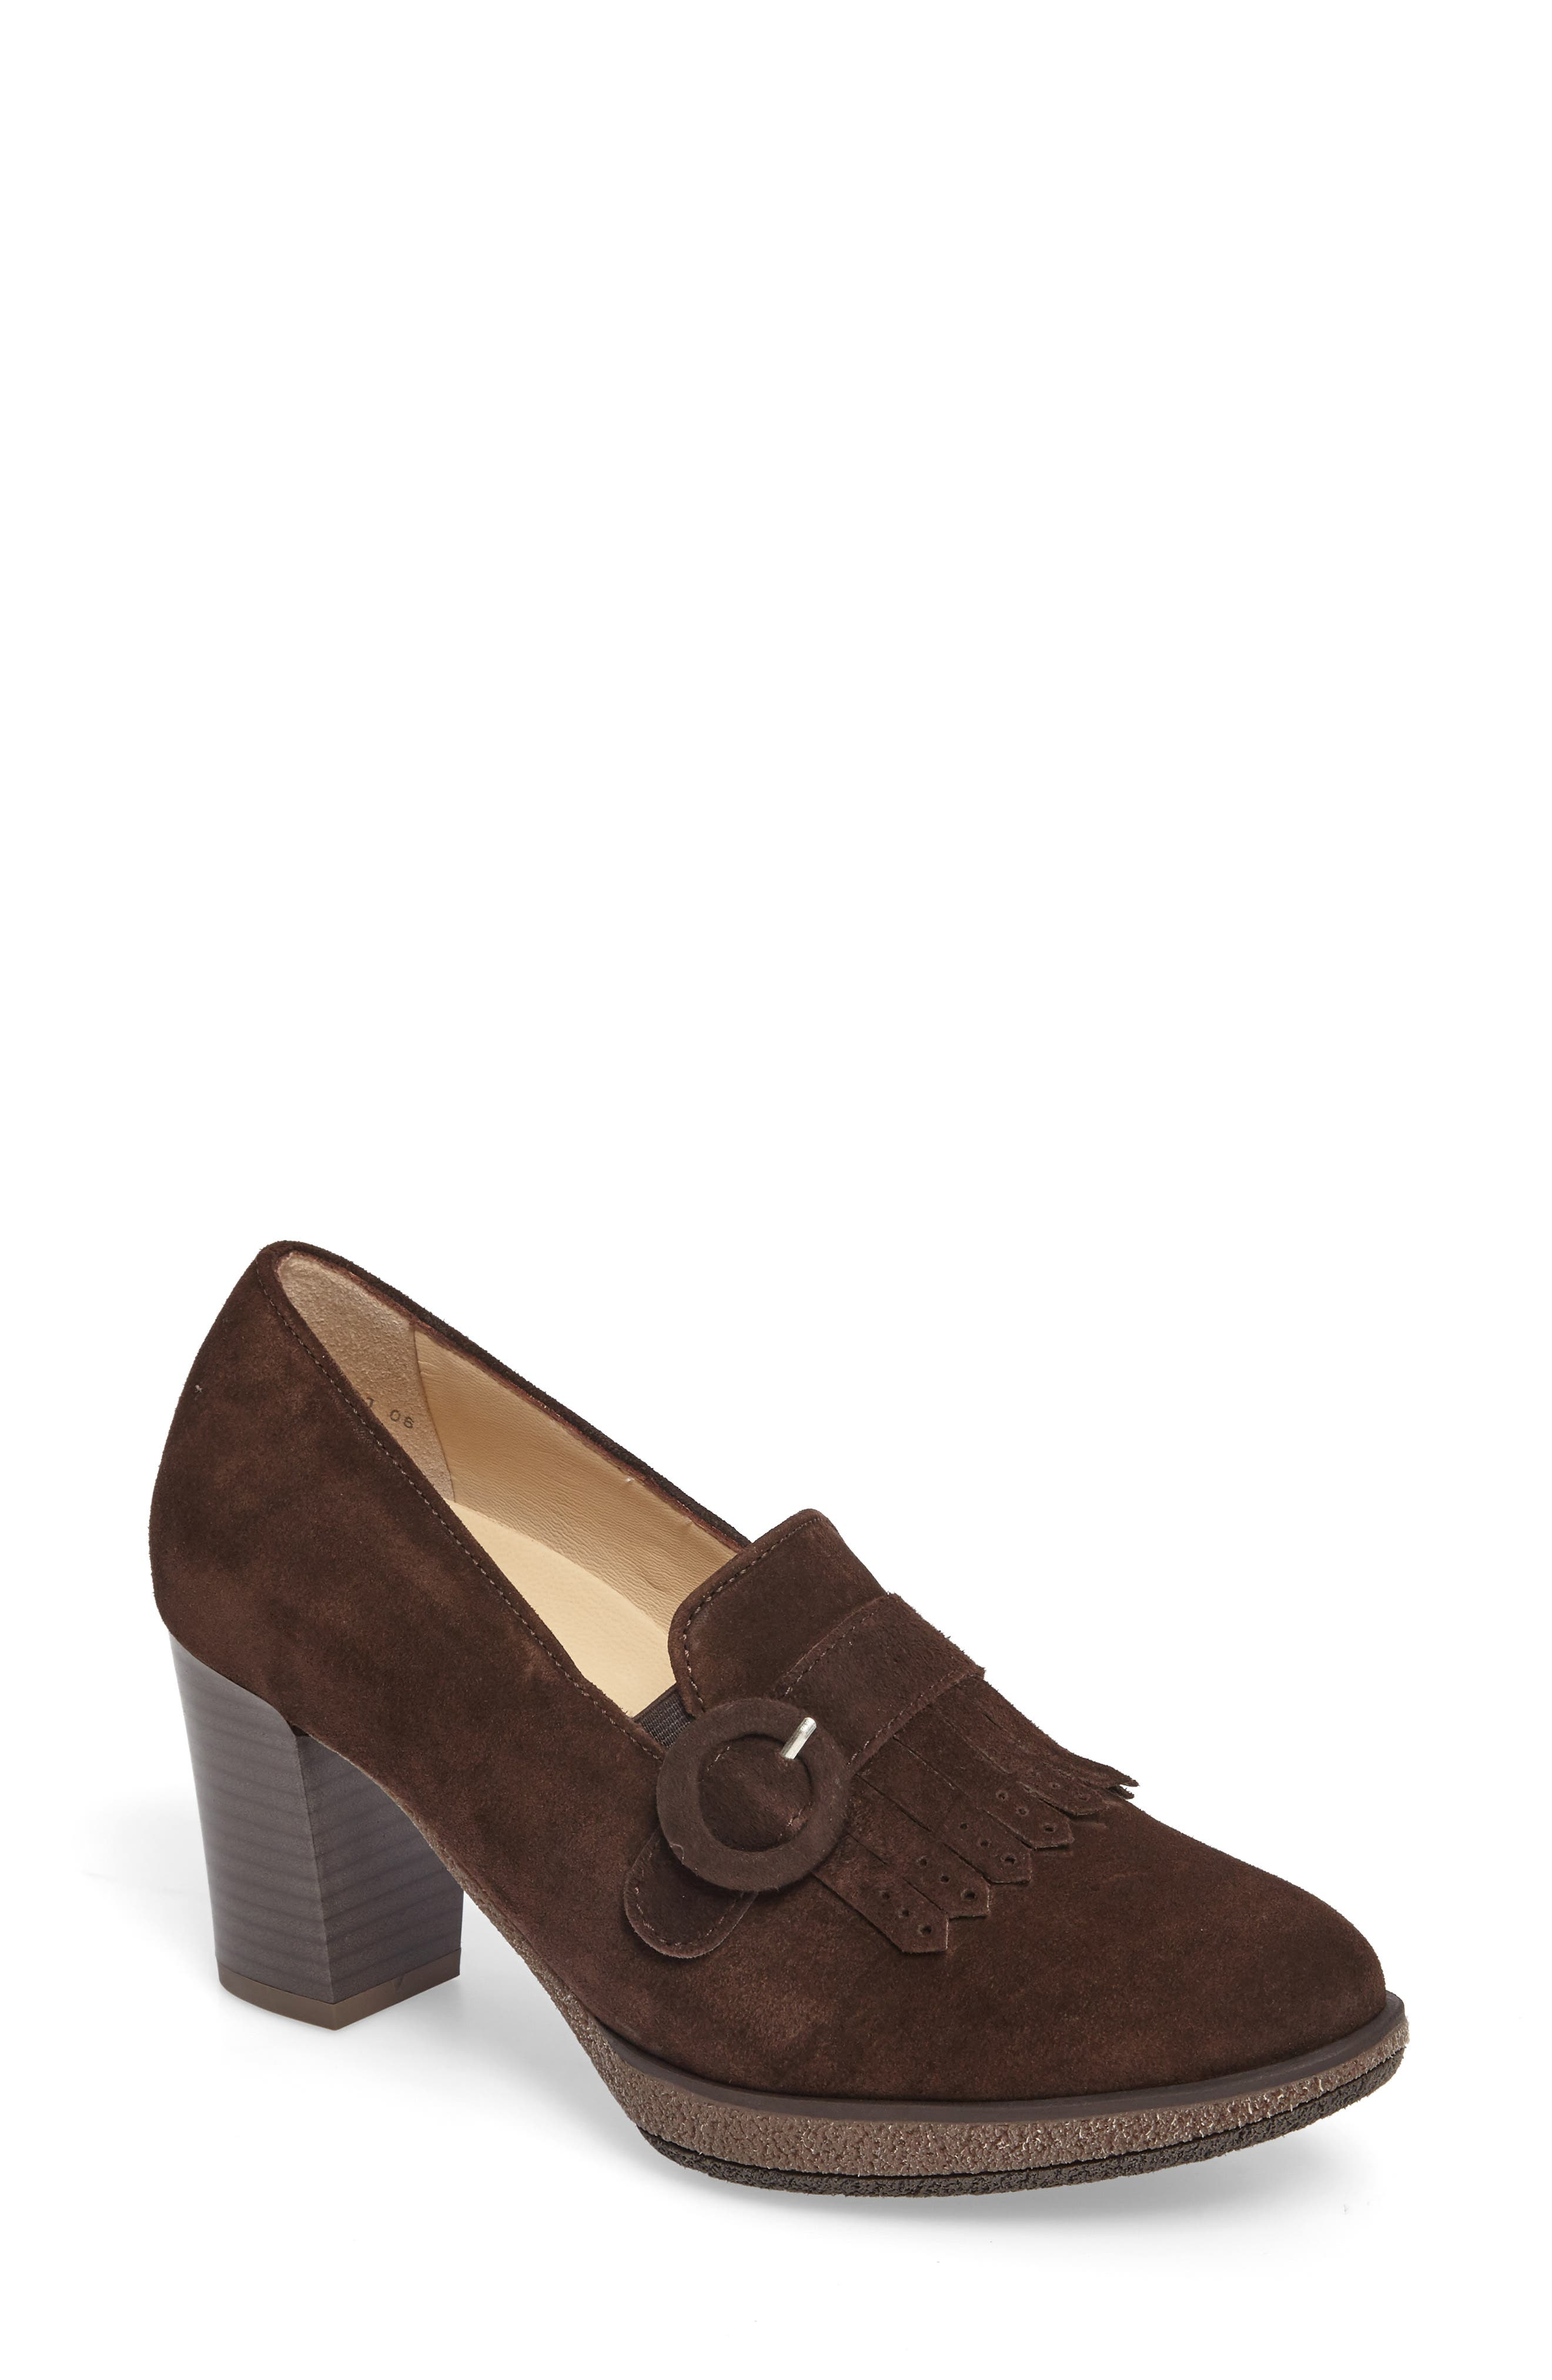 Becky Loafer Pump,                         Main,                         color, BROWN SUEDE